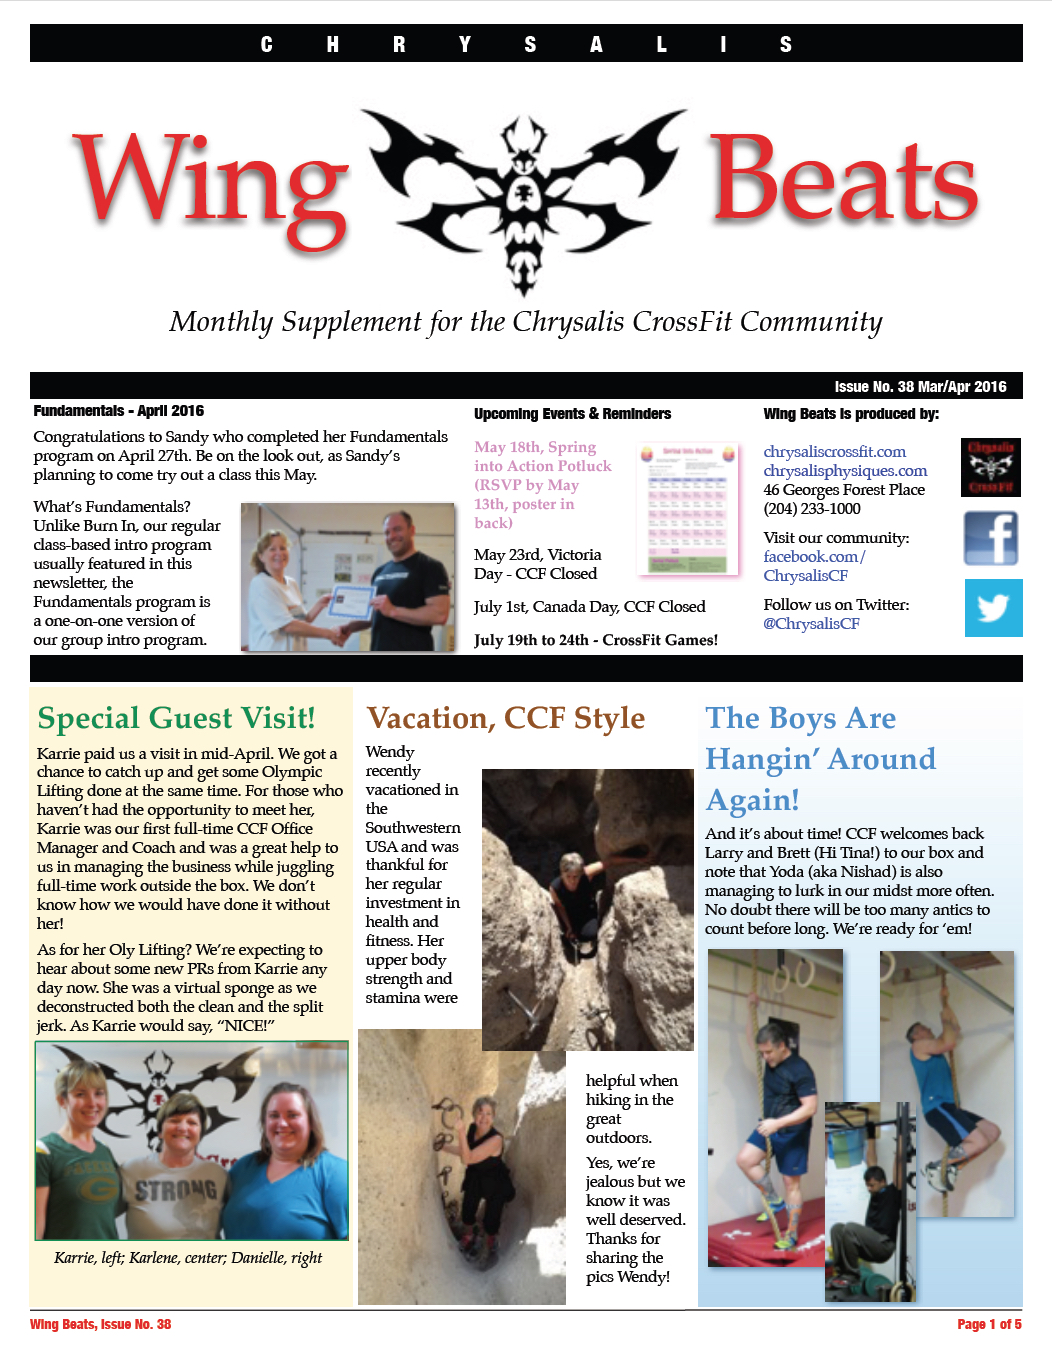 WingBeats Issue #38 - MarApr 2016